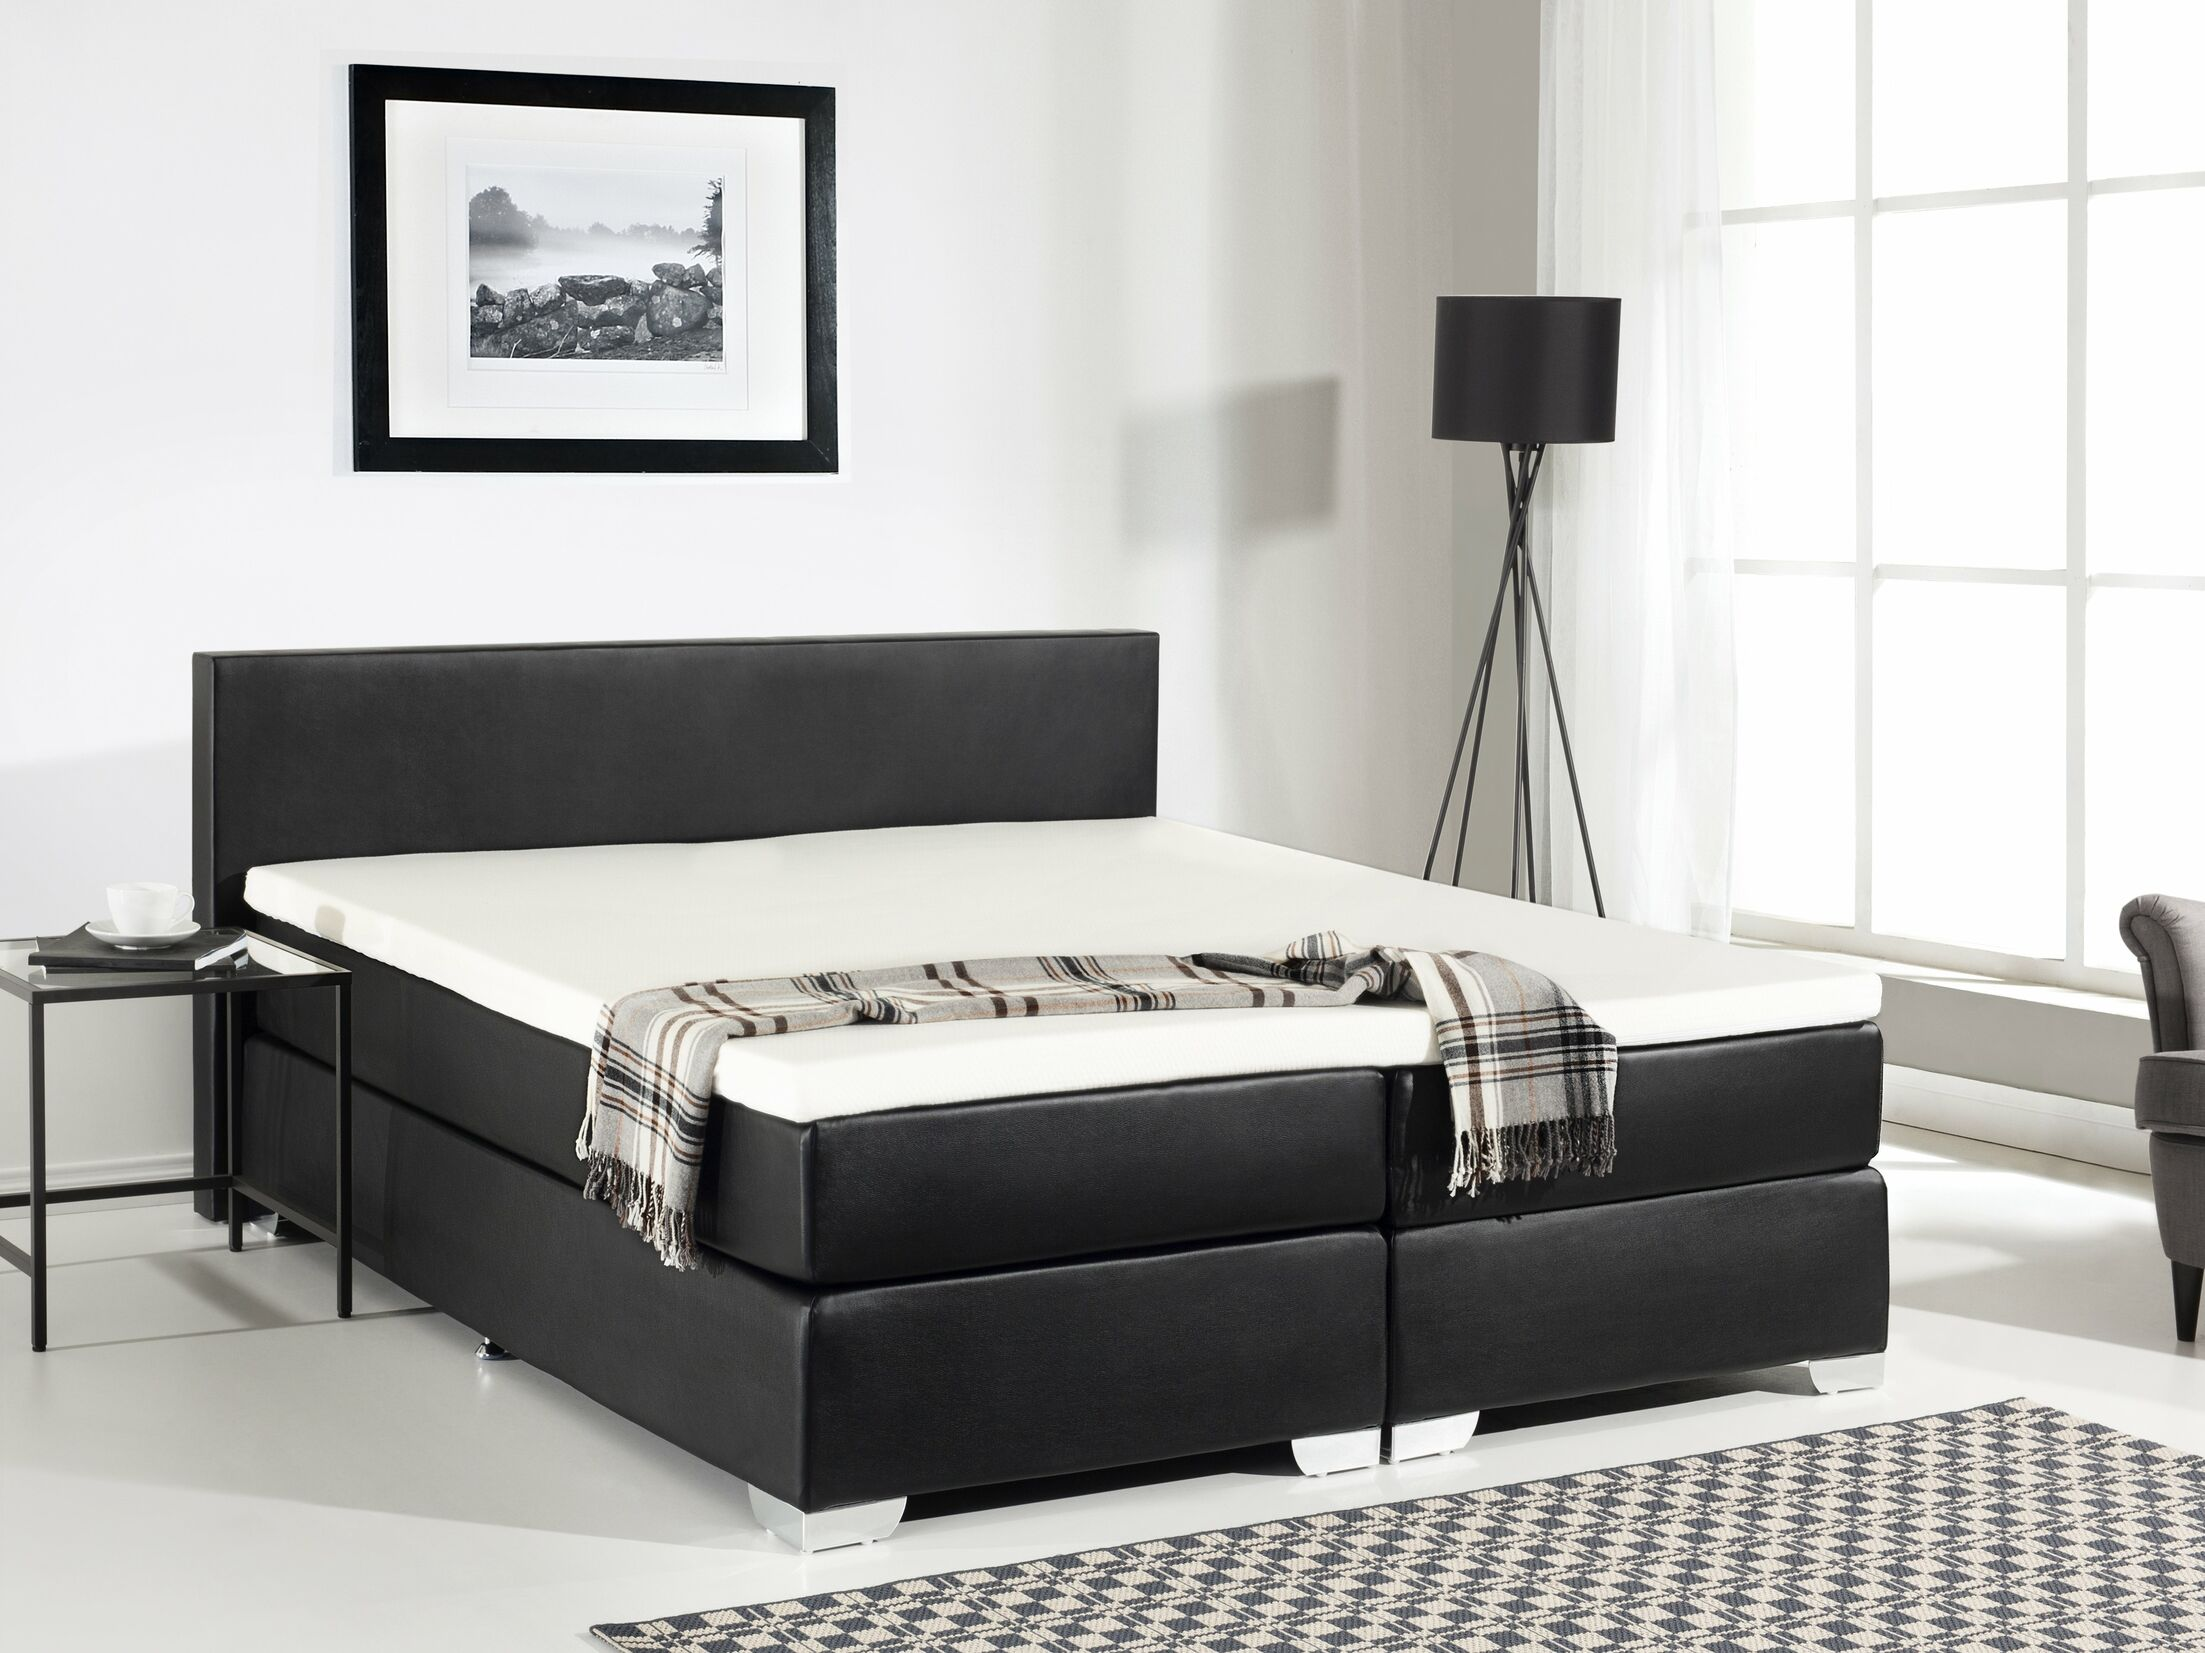 Gaskill Upholstered Platform Bed with Mattress Size: Queen, Color: Black